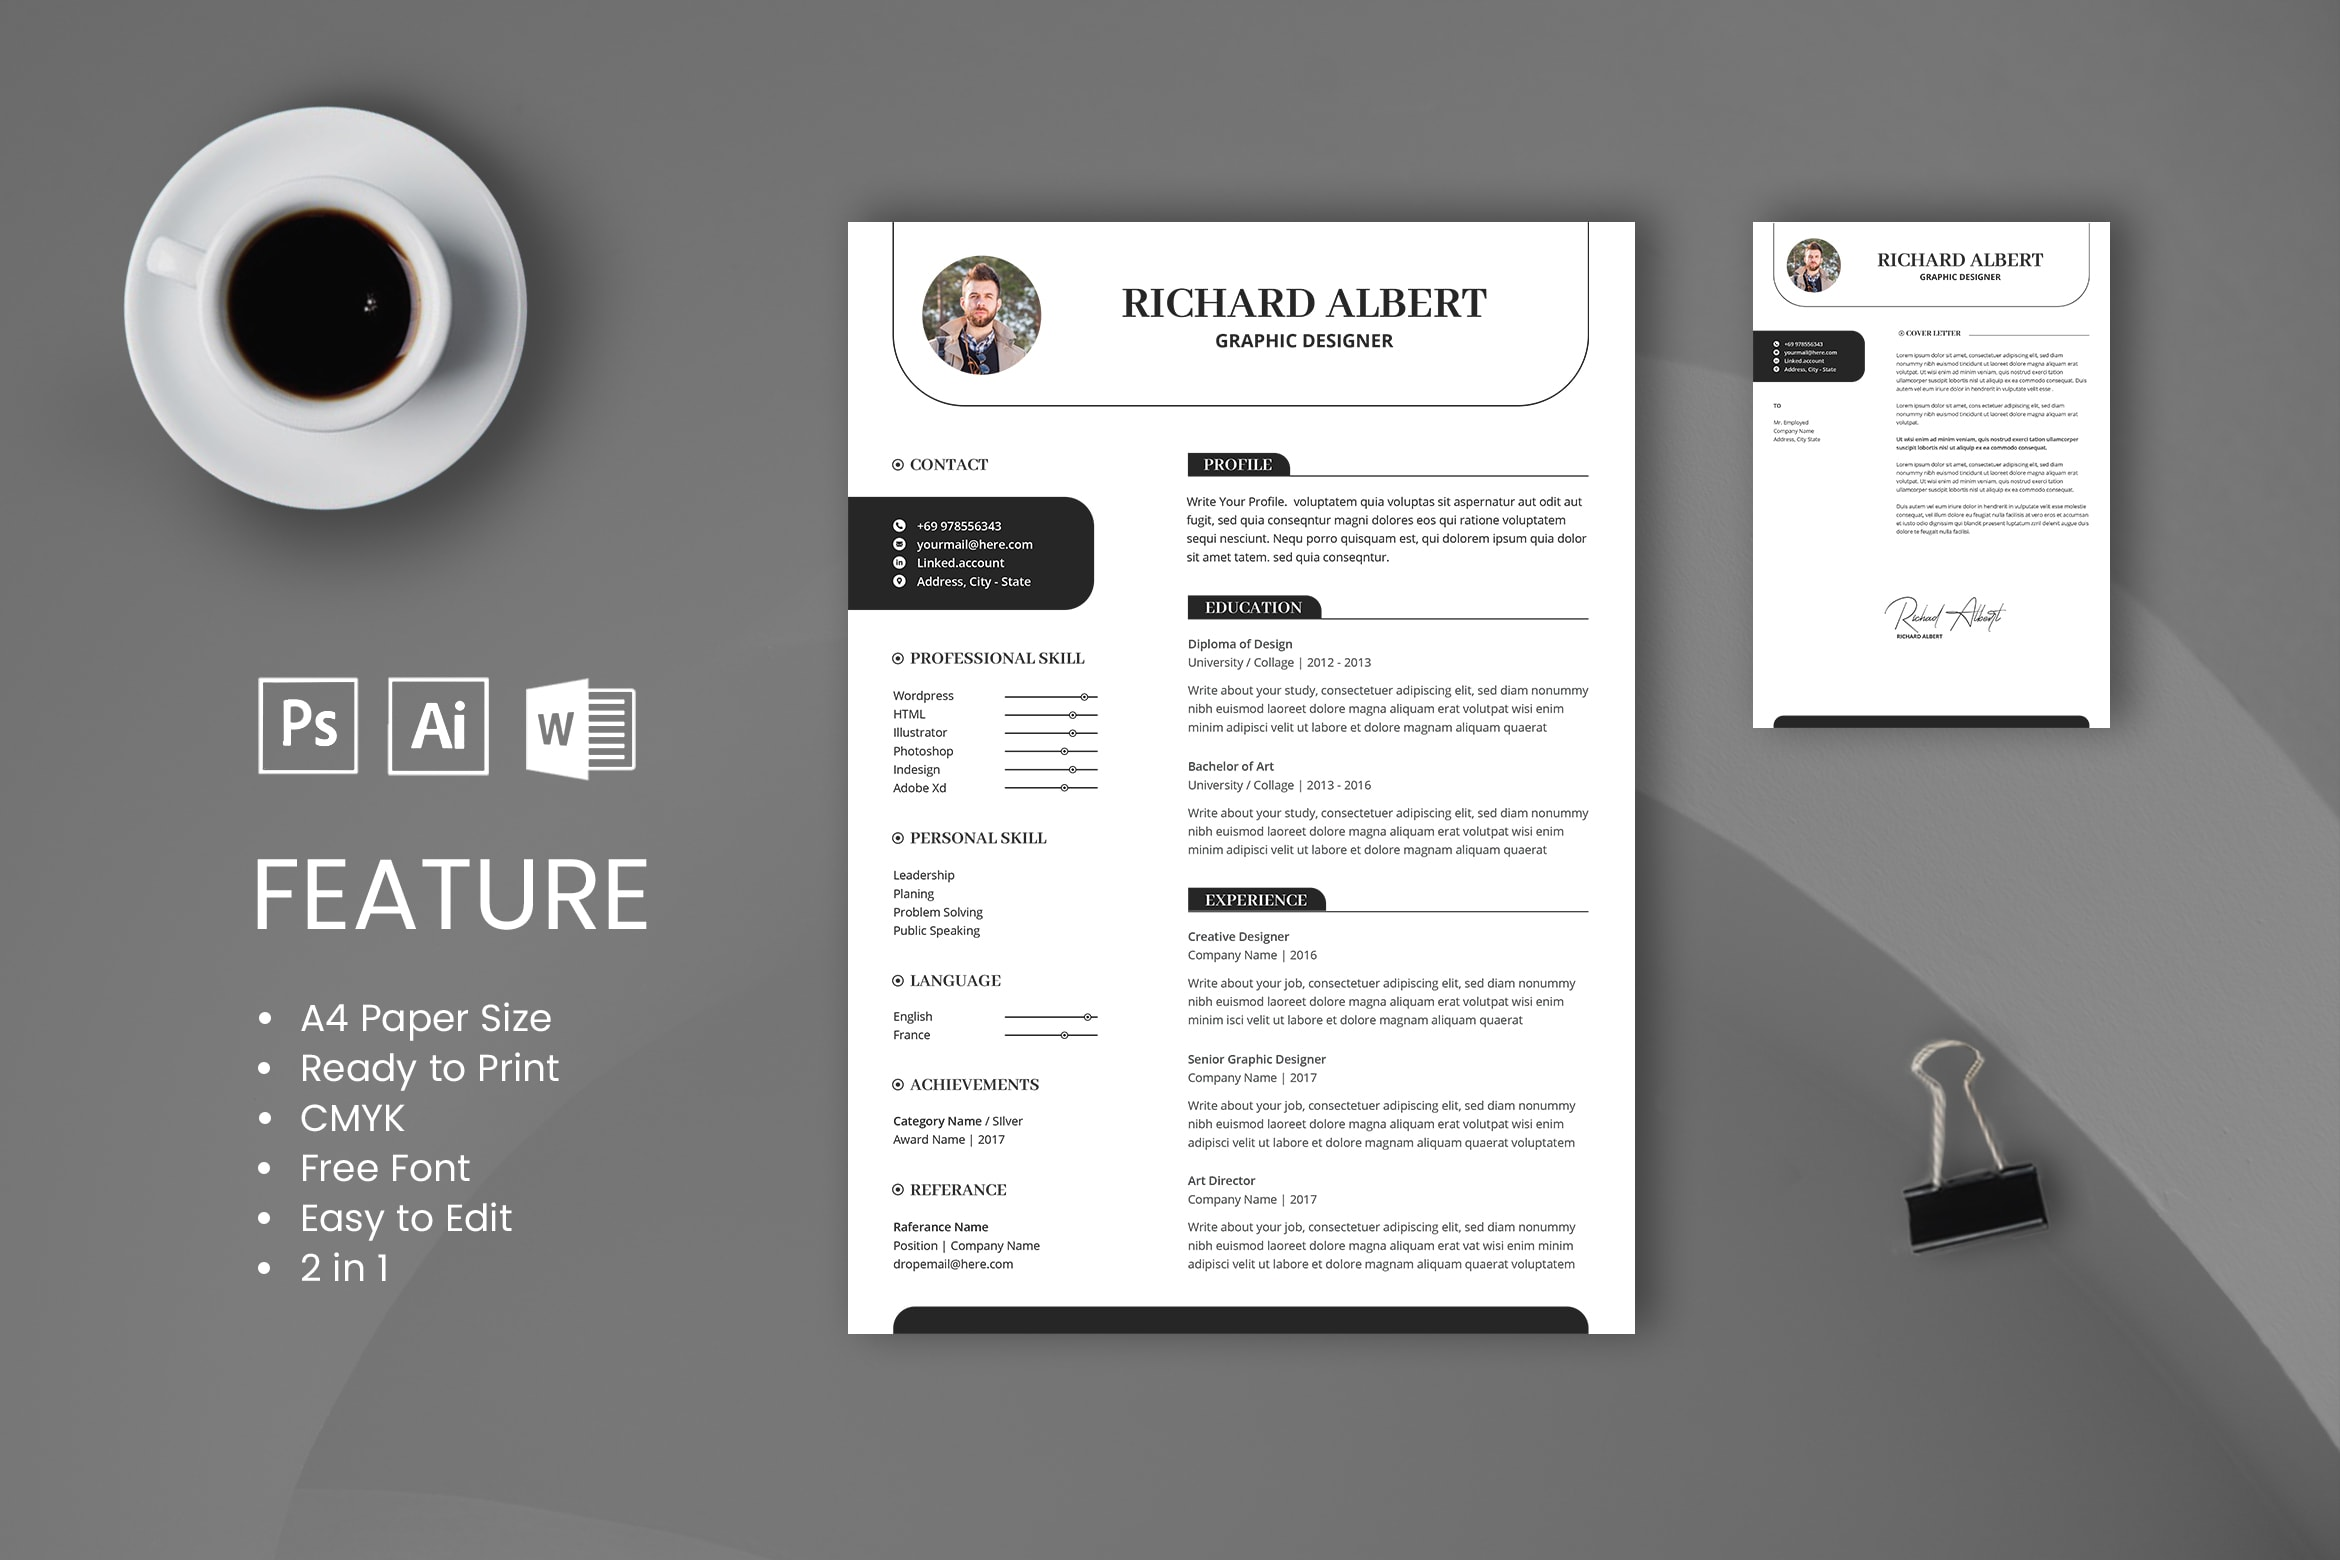 CV Resume – Graphic Designer Profile 8